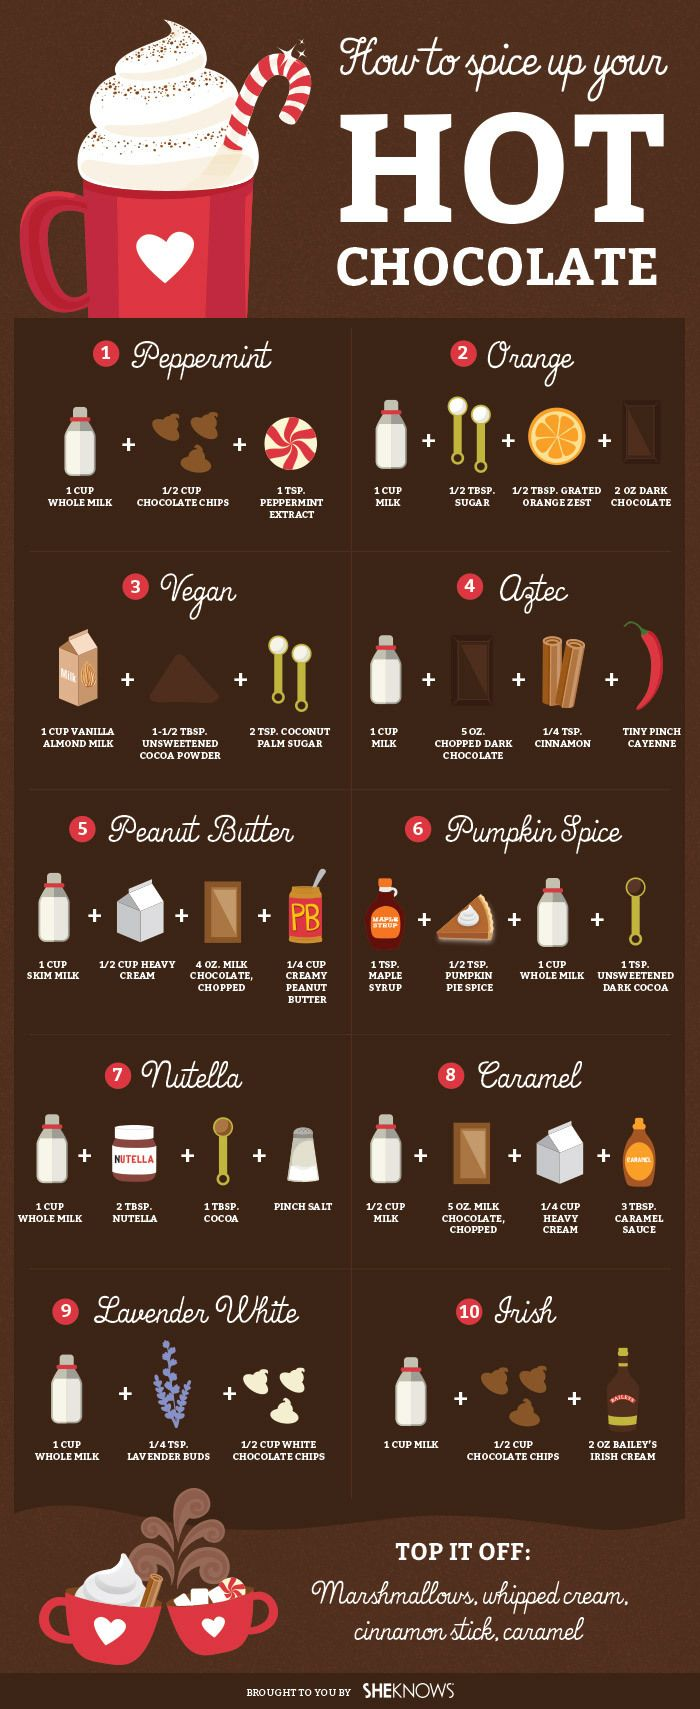 10 Ways You Can Make Your Hot Chocolate Even Better